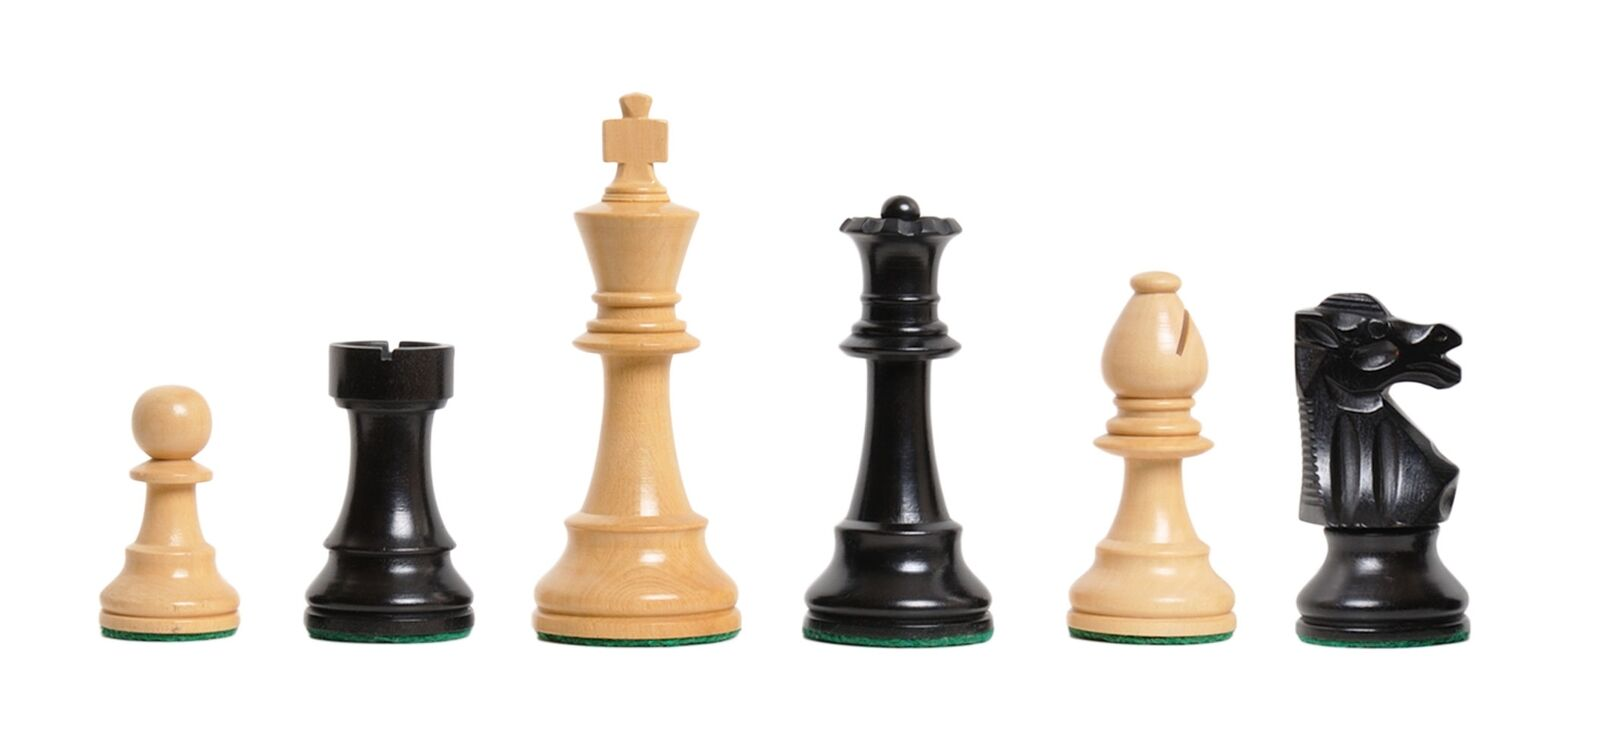 The Club Chess Set - Pieces Only - 3.75  re - Ebonized scatolawood